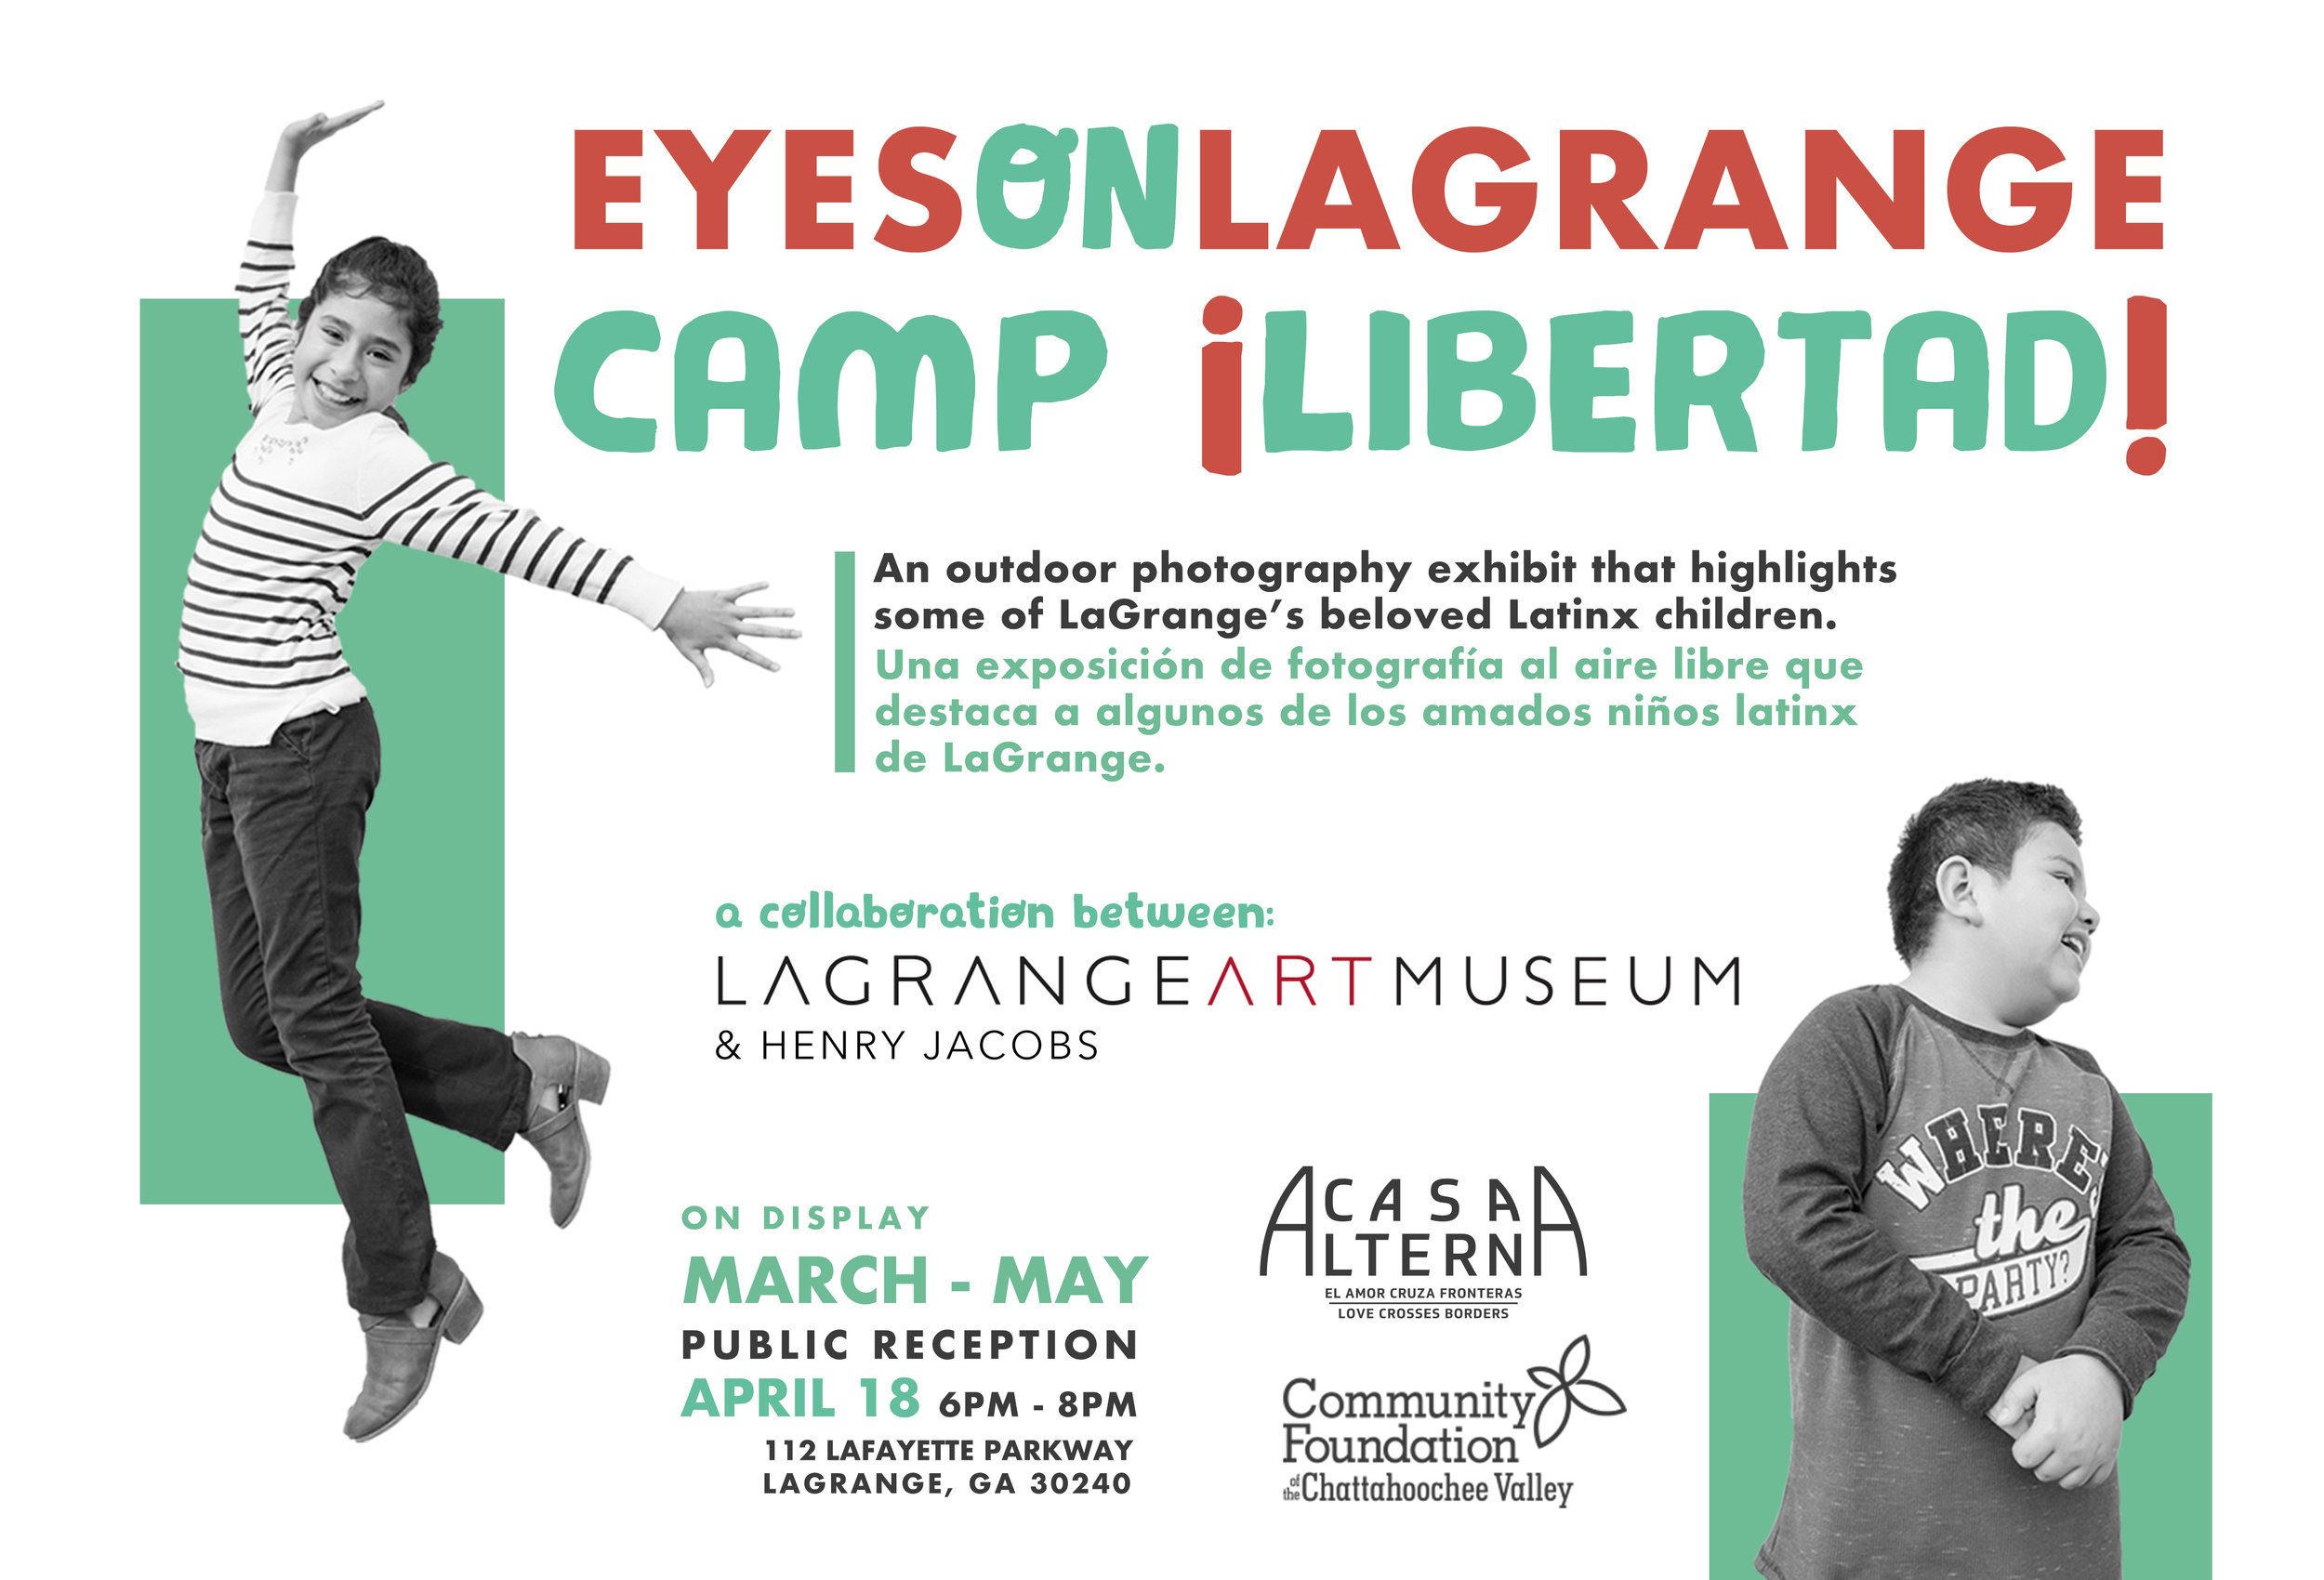 Eyes on LaGrange_Camp Libertad_Promo.jpg